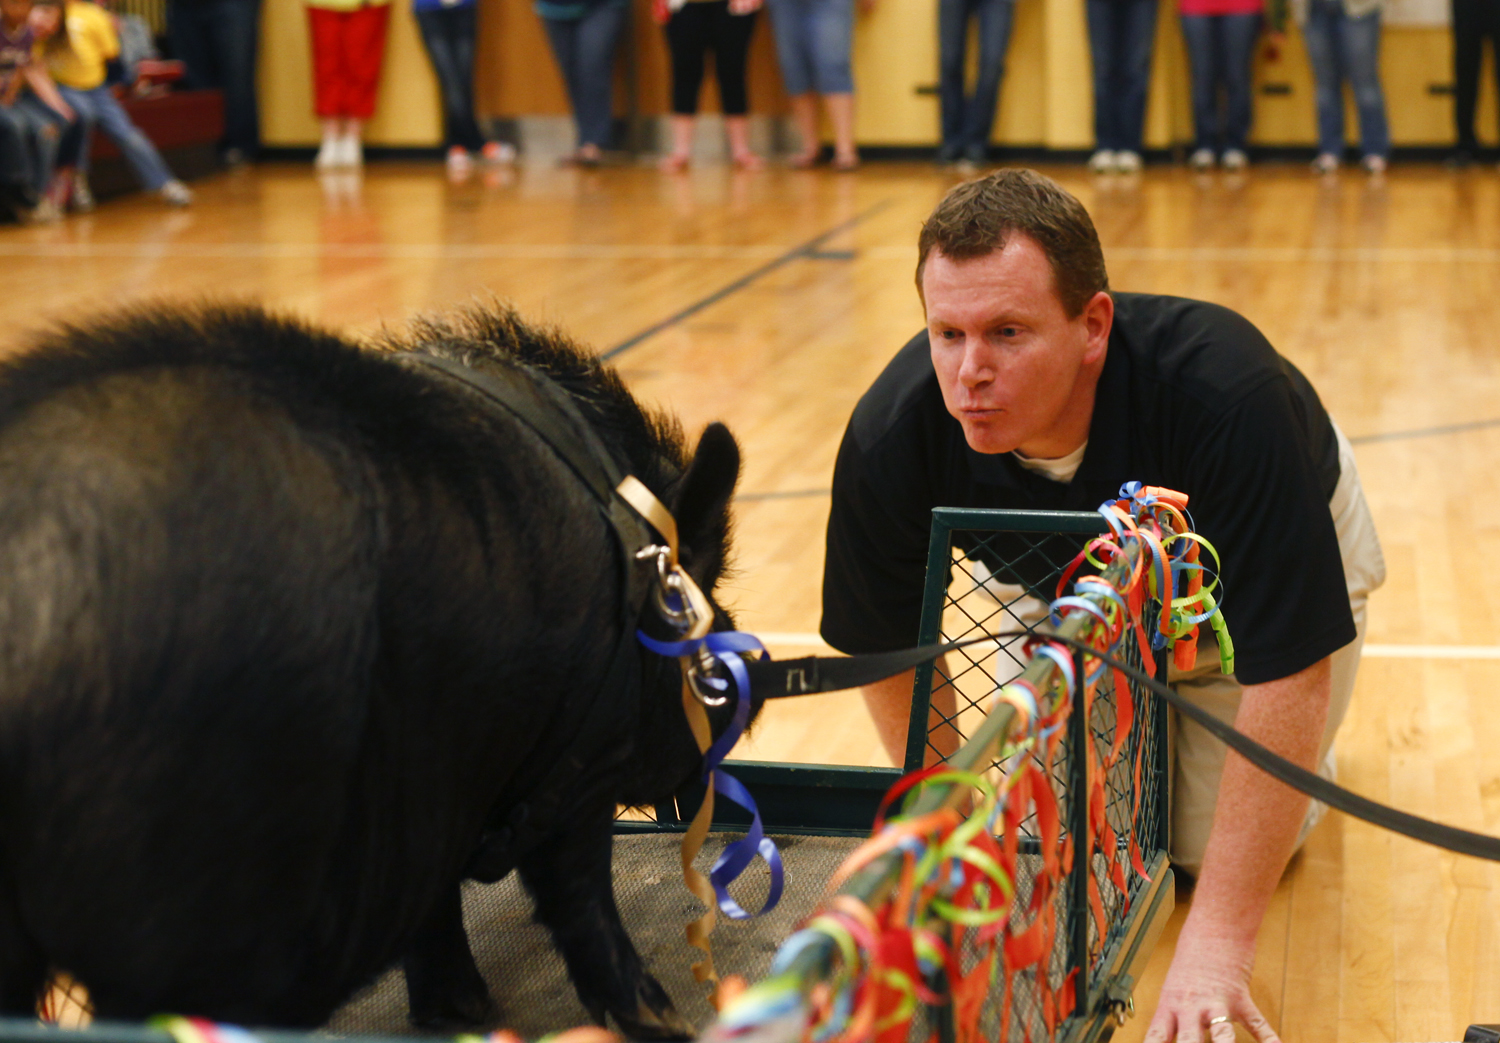 Principal Andy Moore puckers up for Herbert the pig during the schools annual Kiss the Pig fundraiser at Locust Grove Elementary. Students vote for their teachers to kiss Herbert by donating change to that teacher throughout the week and the teachers with the most money have to kiss Herbert. Money from the fundraiser will go toward expanding the playground area and adding a kickball field.